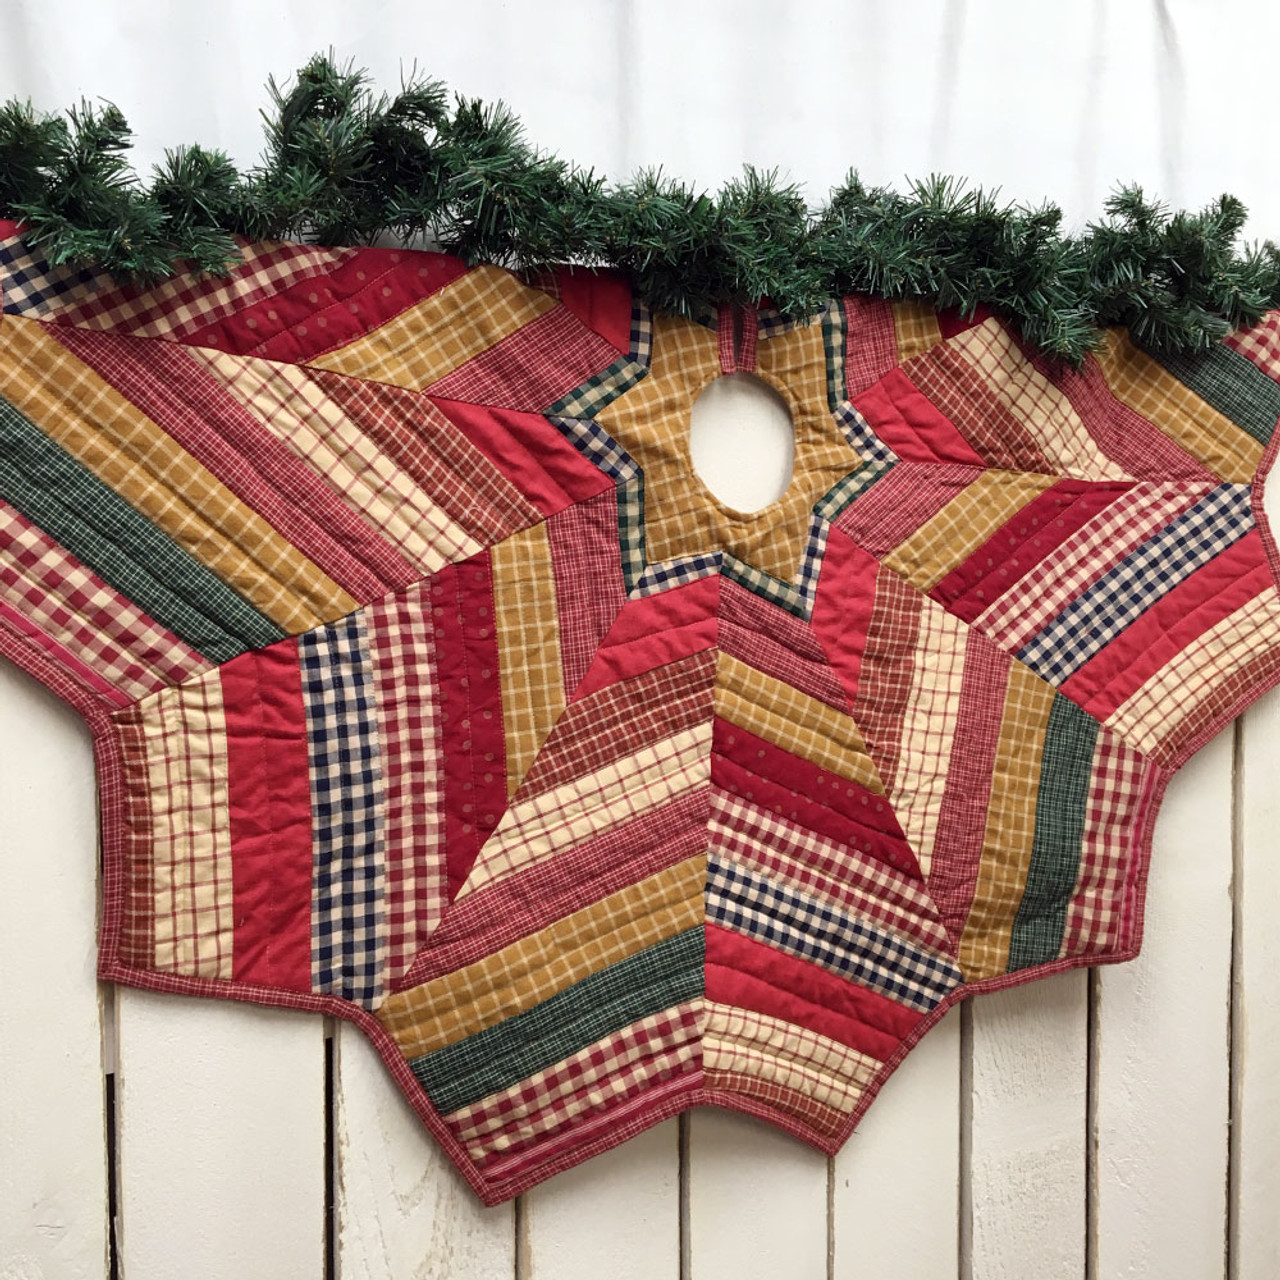 48 Quilted Homespun Plaid Christmas Tree Skirt Jubilee Fabric,Rudolph The Red Nosed Reindeer The Movie Dvd